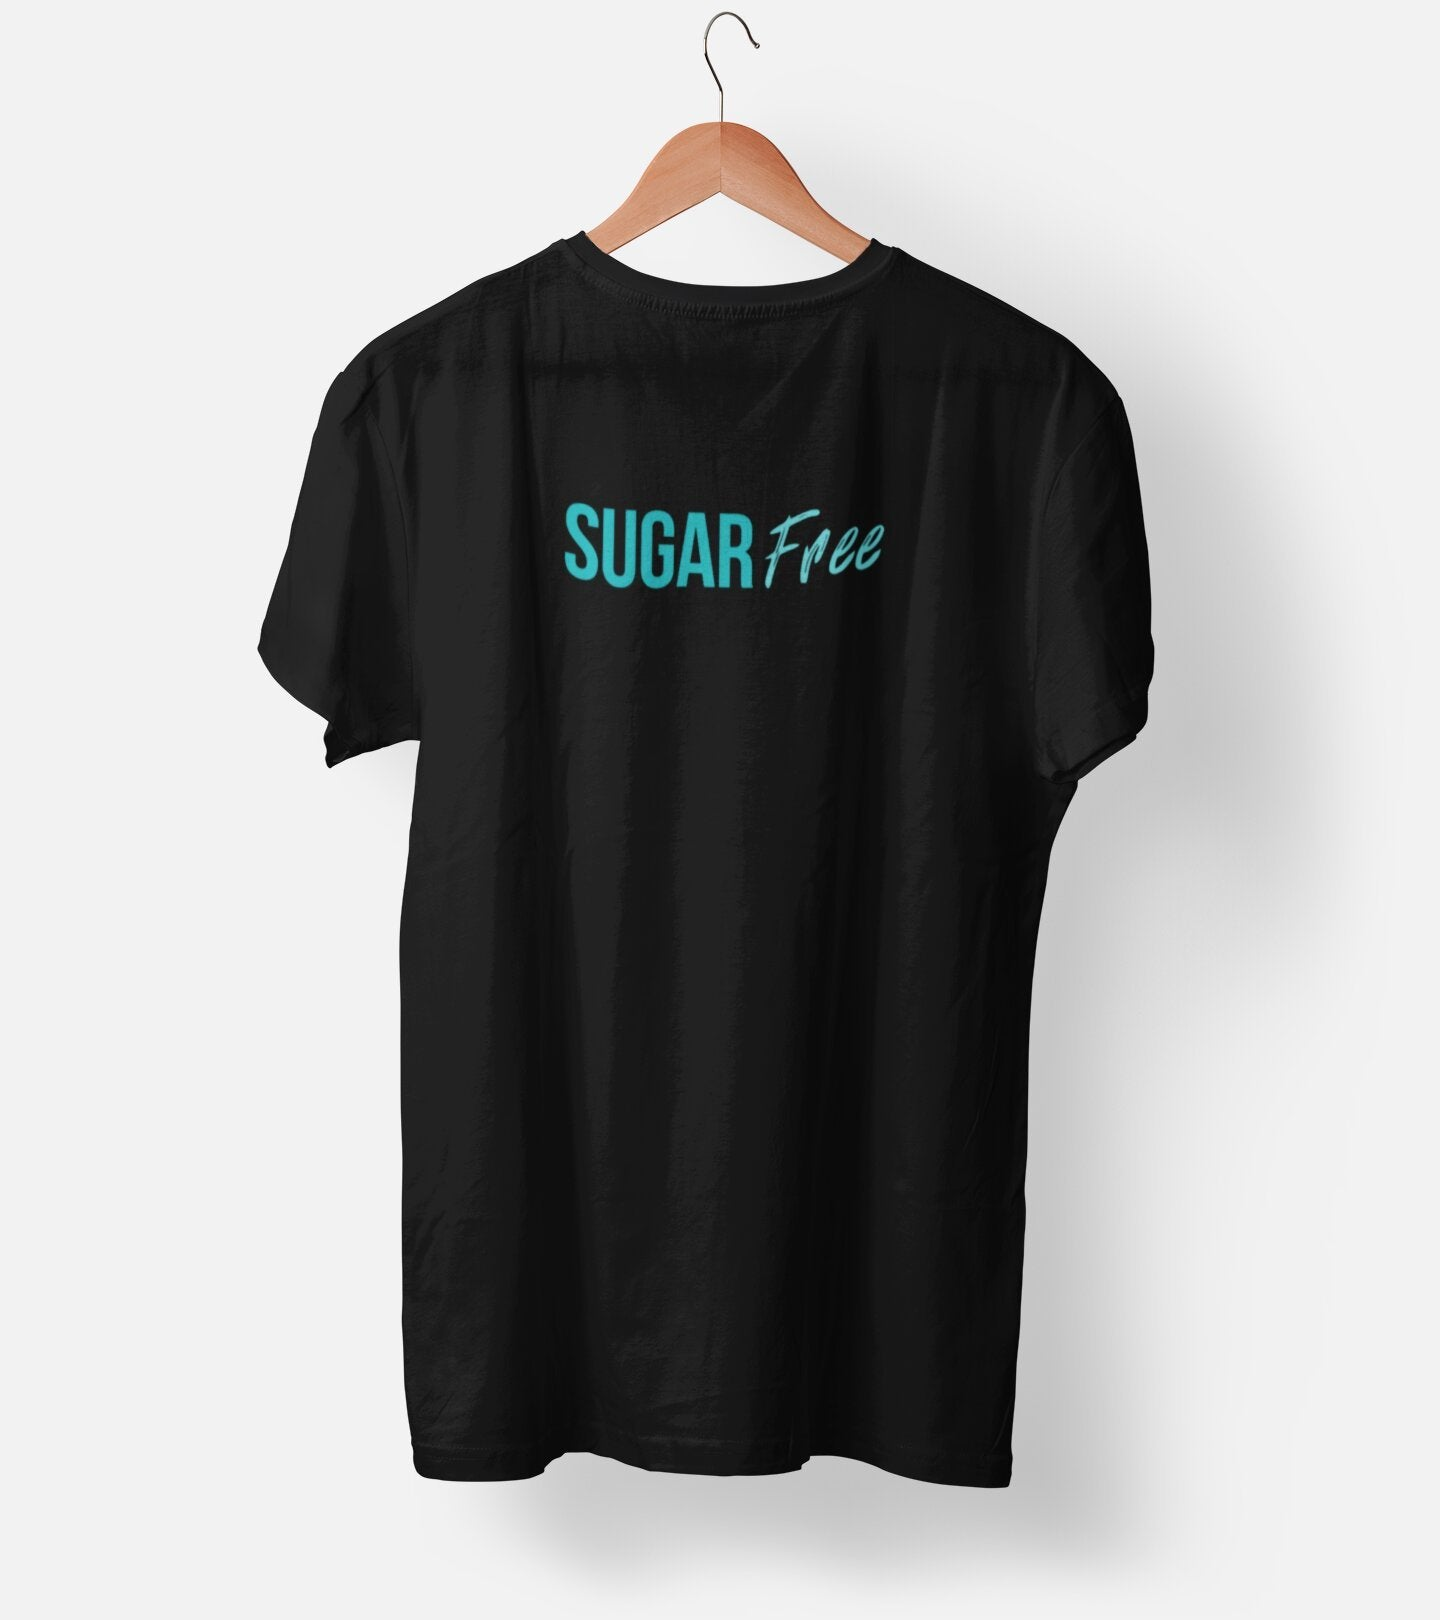 Sugarfree Fitness Men's T-Shirt